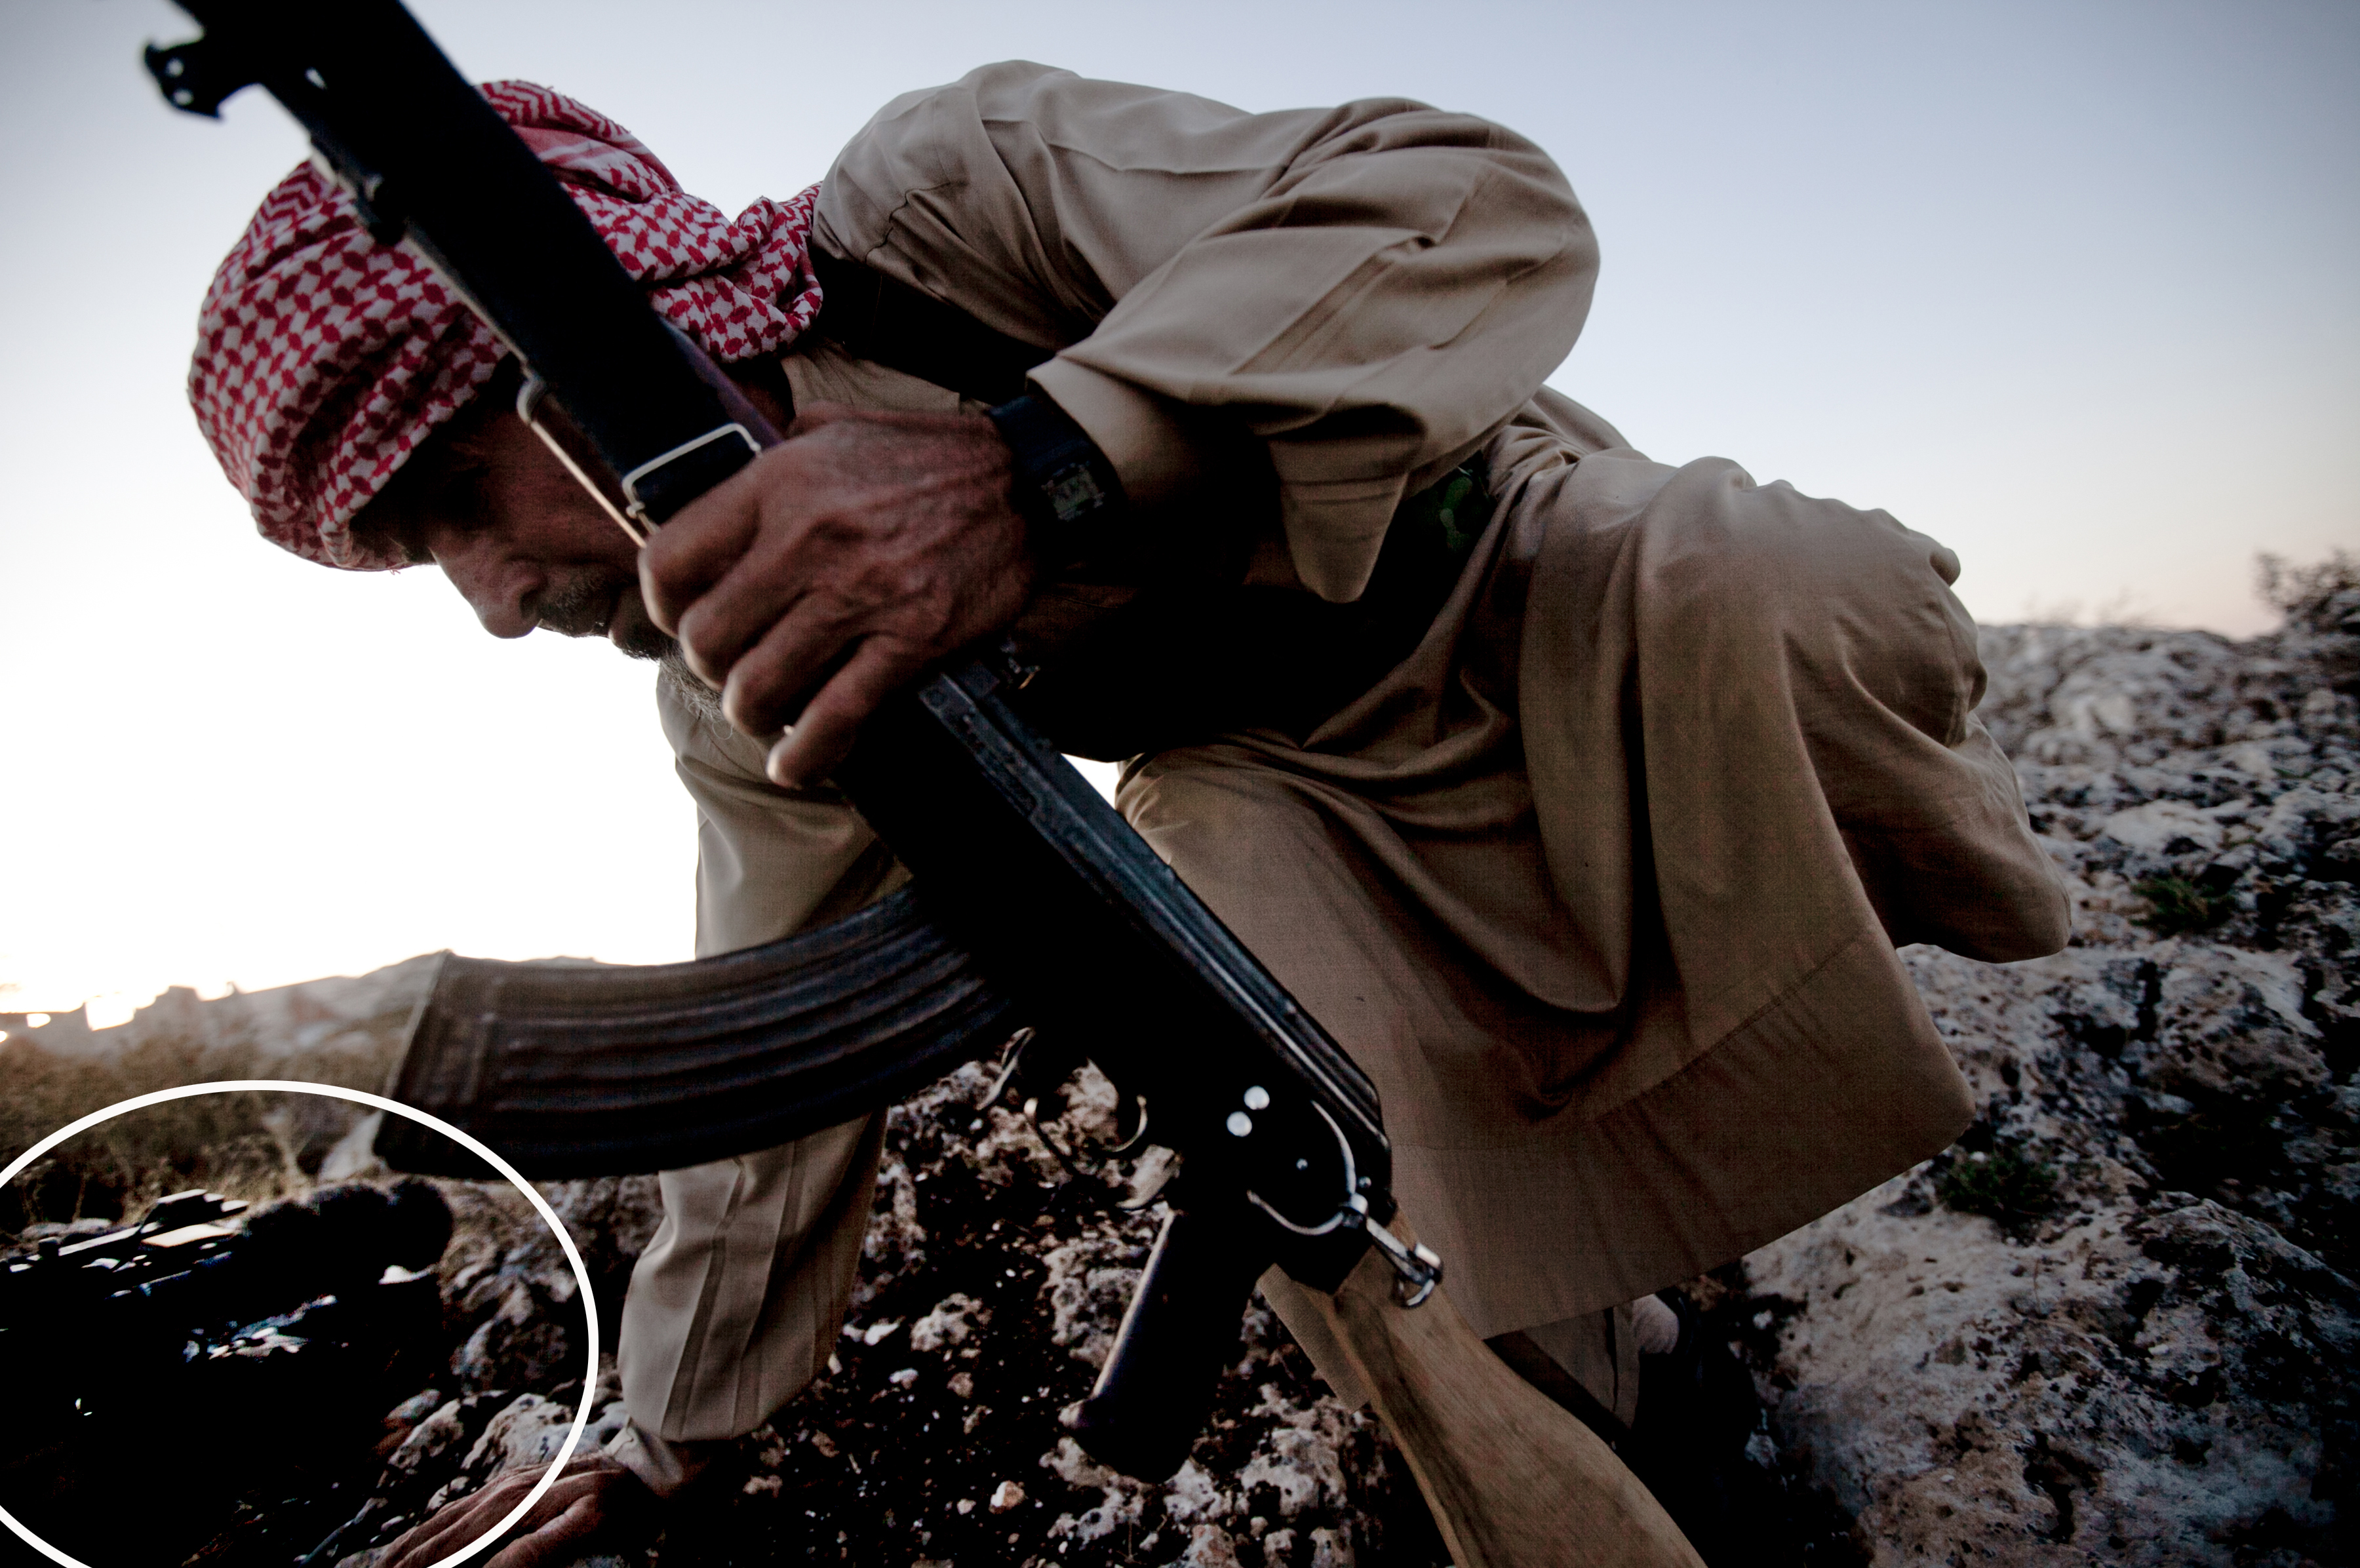 """A Syrian opposition fighter takes cover during an exchange of fire with government forces in Telata village, Syria on Sept. 29, 2013. This <a href=""""http://www.ap.org/Content/AP-In-The-News/2014/AP-severs-ties-with-photographer-who-altered-work"""" target=""""_blank"""">original</a> photo shows a journalist's video camera on the ground in the left corner of the frame, which was later removed by the photographer."""